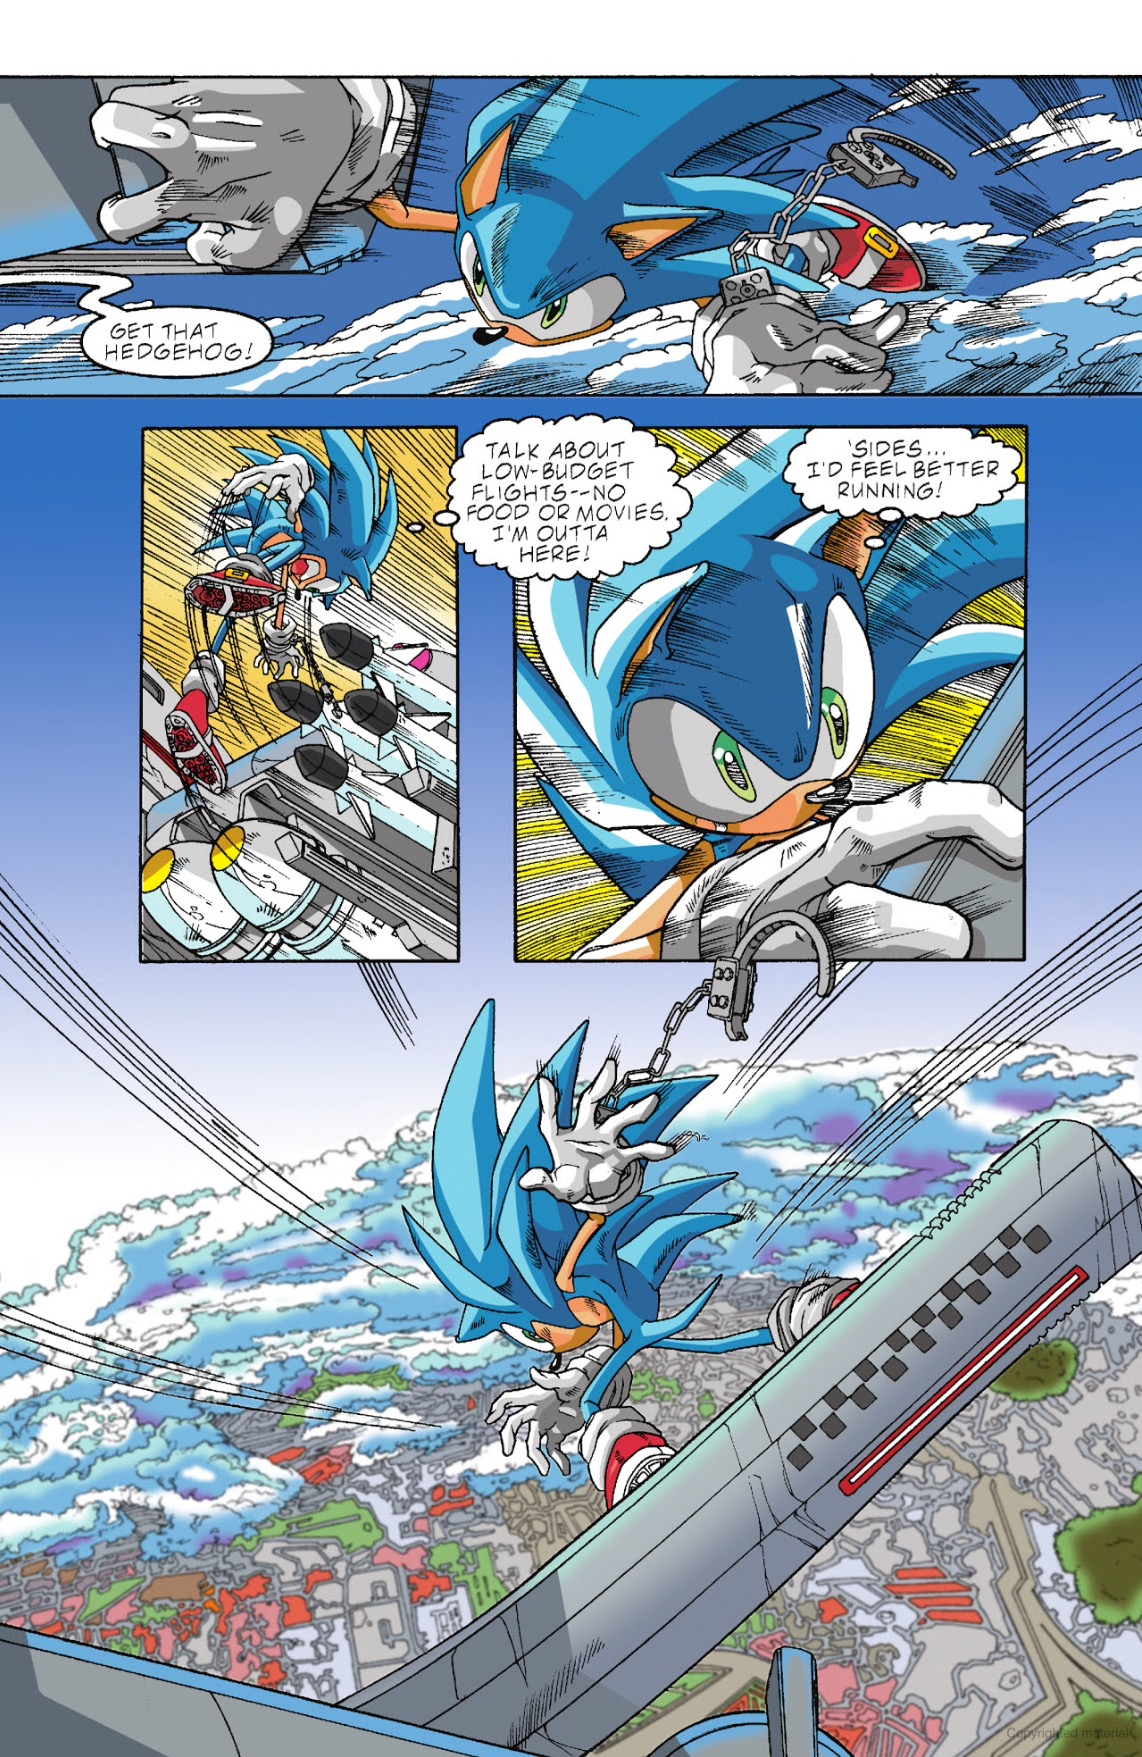 Archie Sonic The Hedgehog Issue 98 Page 13 By Ideafan128 On Deviantart